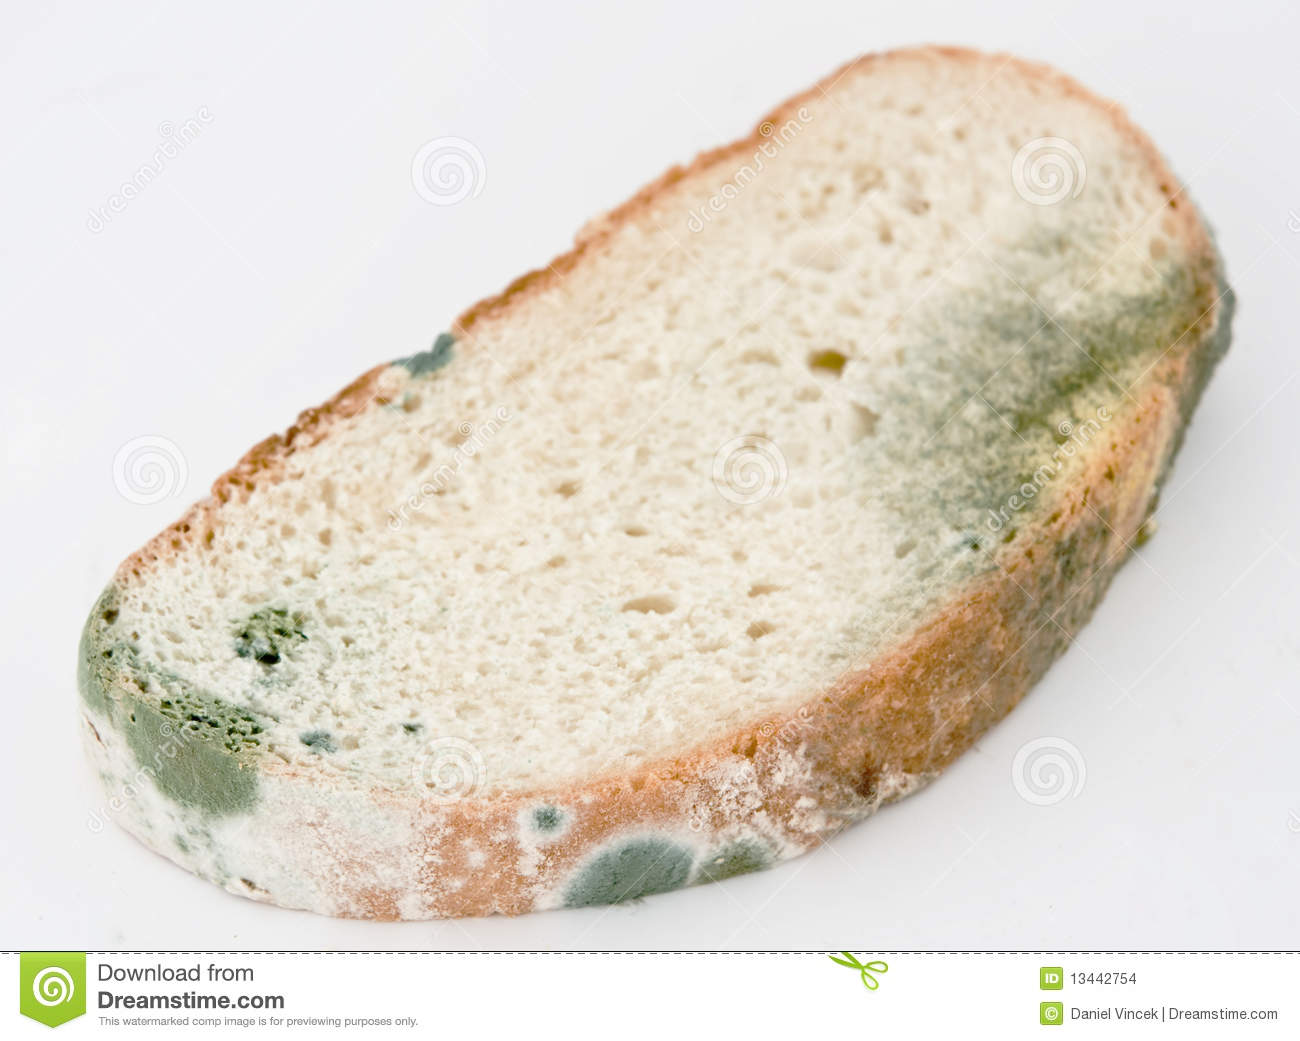 Mold On Bread Stock Images - Image: 13442754